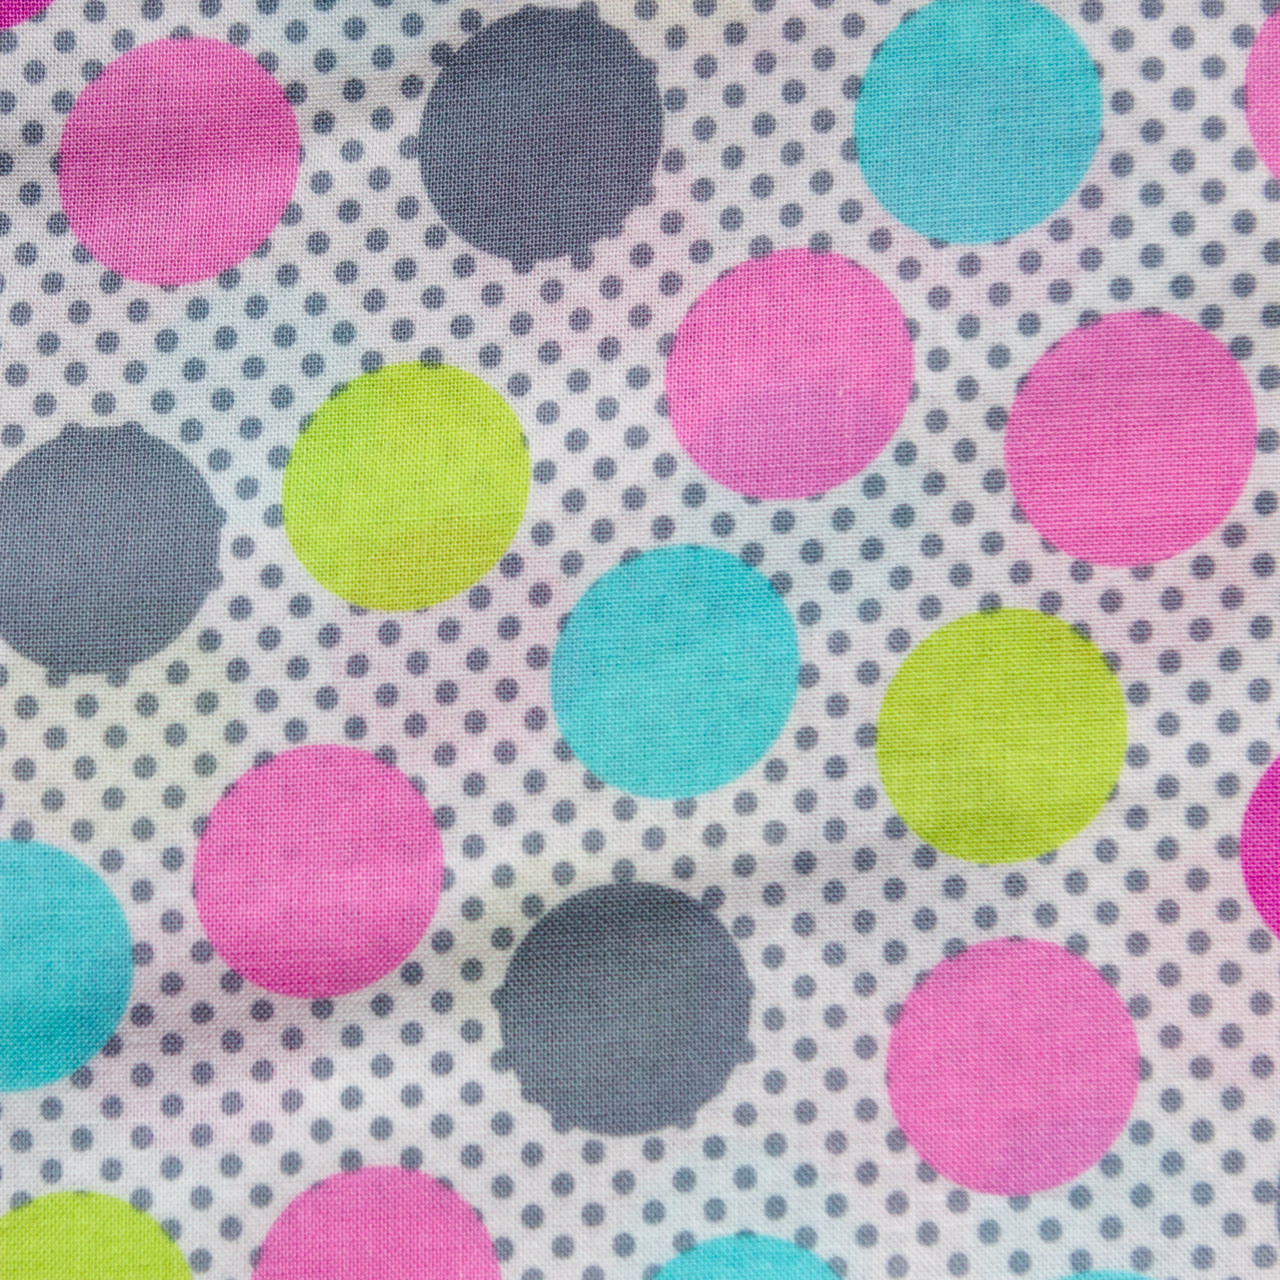 Pastel Polka Dots print